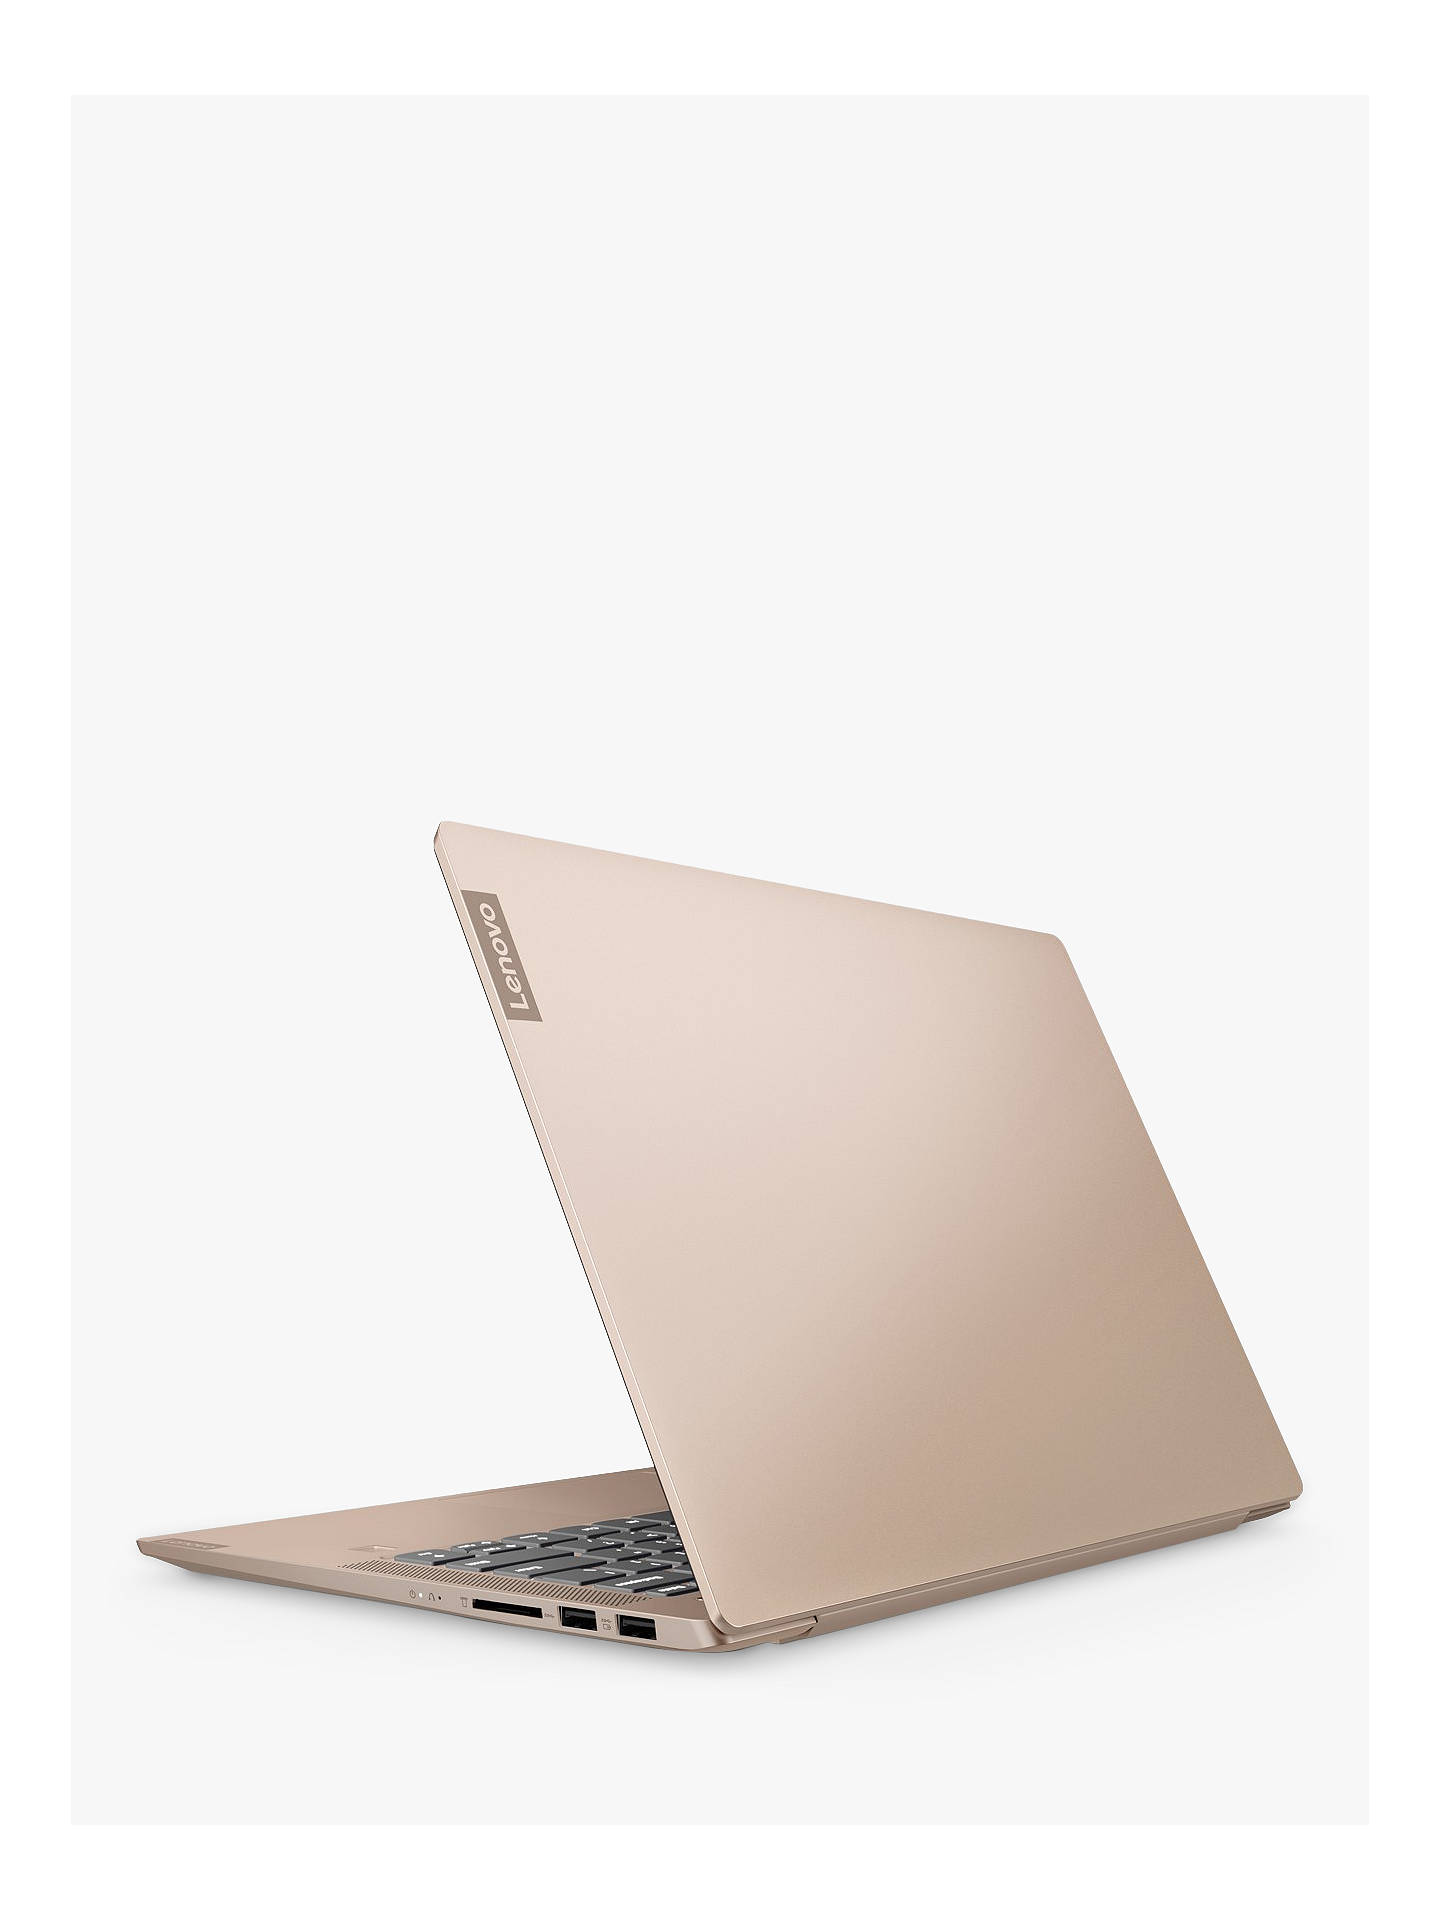 "Buy Lenovo IdeaPad Ideapad S540-14API Laptop, AMD Ryzen 5 Processor, 8GB RAM, 256GB SSD, 14"" Full HD, Rose Gold Online at johnlewis.com"